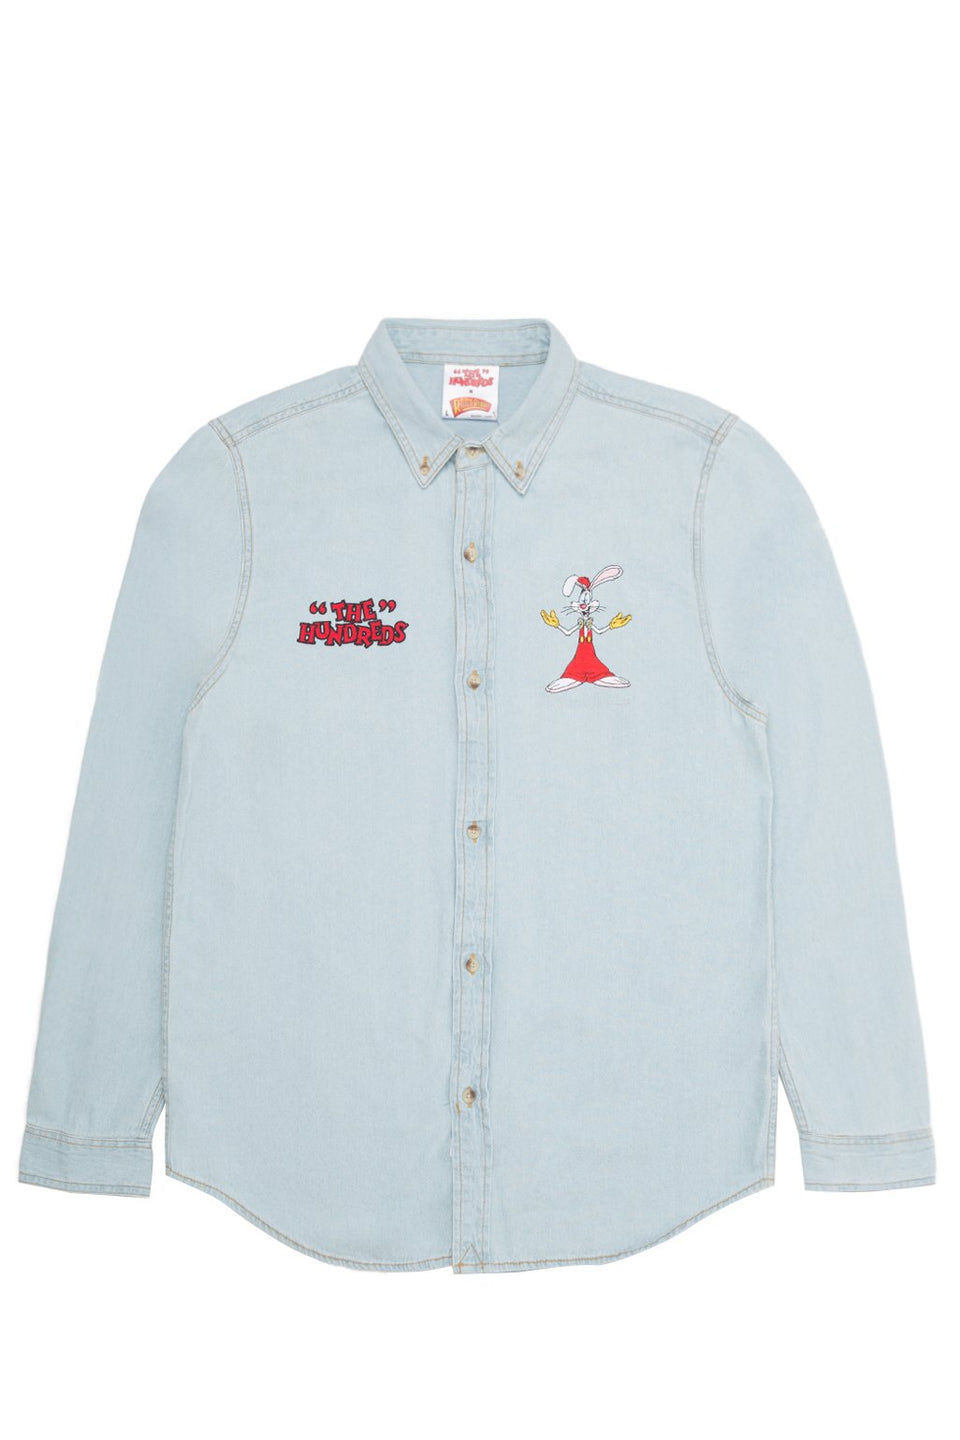 Souvenir Button-Up